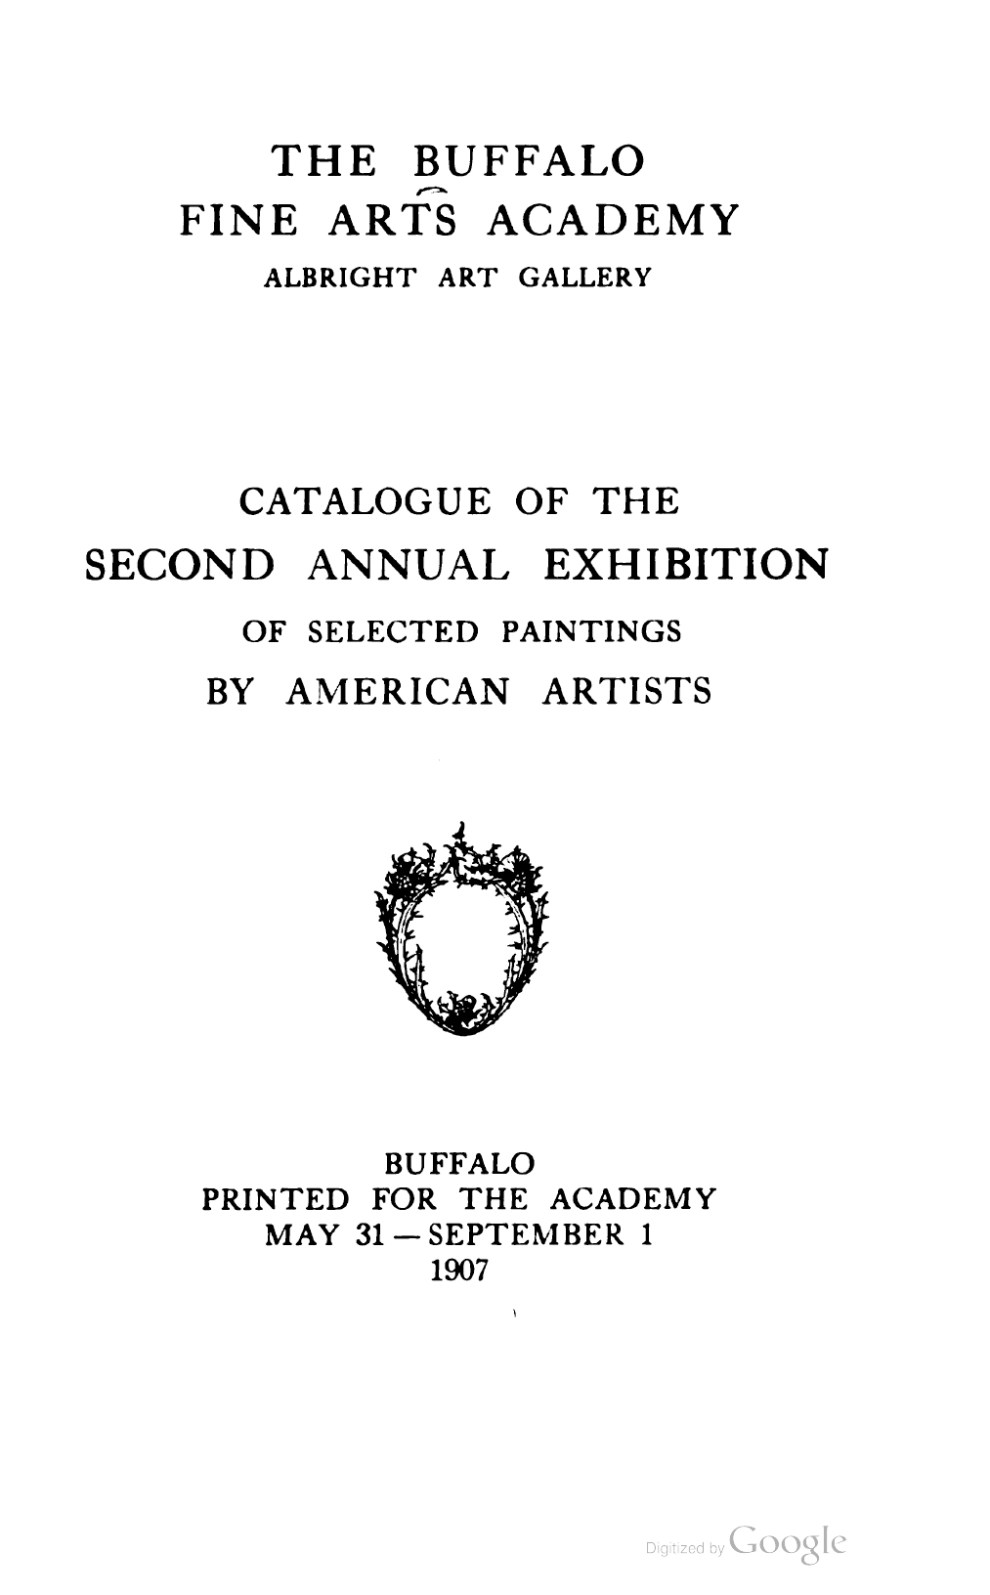 "1907 Buffalo Fine Arts Academy, Albright Art Gallery, Buffalo, NY, ""Second Annual Exhibition of Selected Paintings by American Artists"", May 31 – September 1"